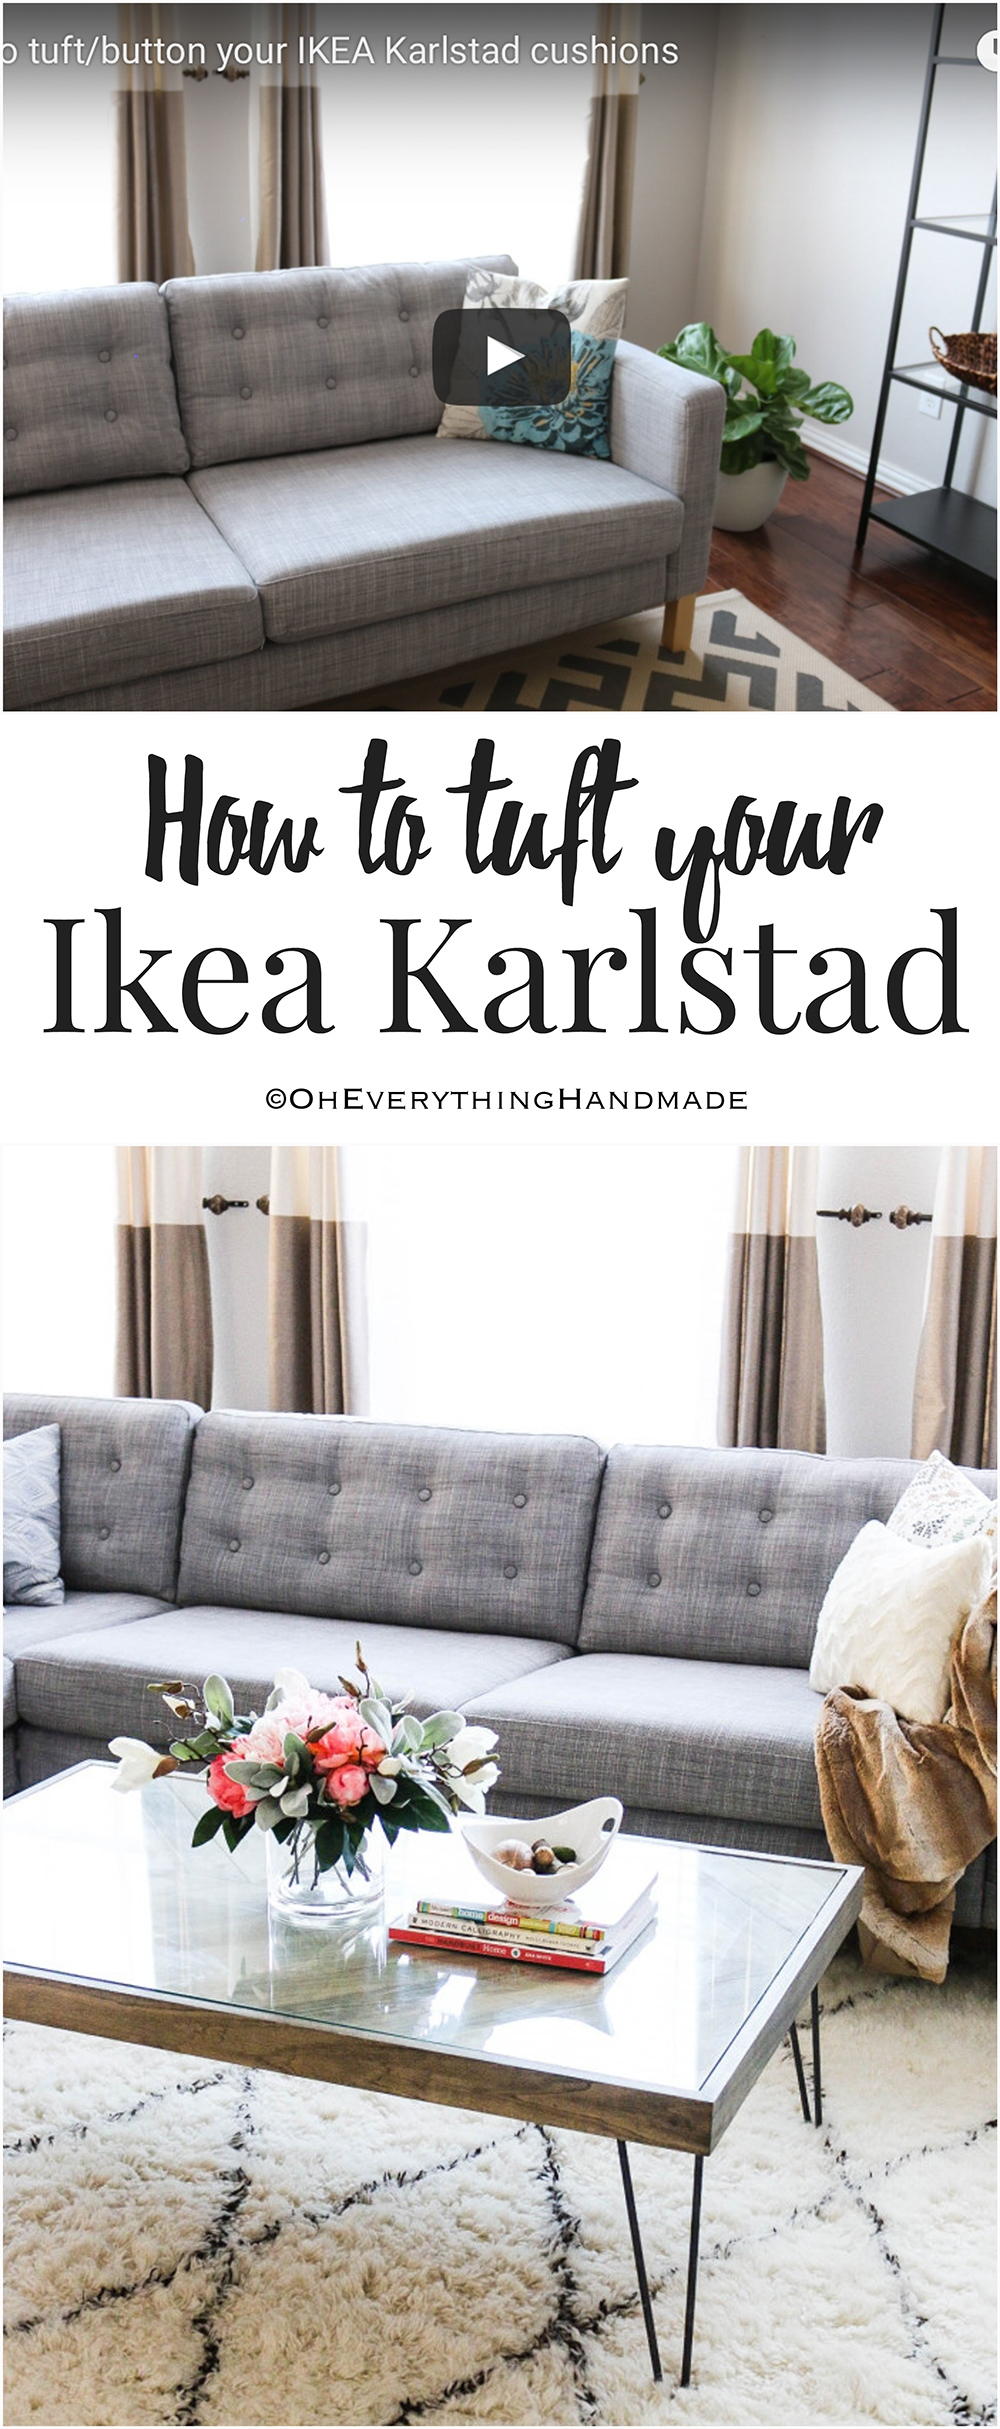 How to tuft button your IKEA Karlstad cushions Oh Everything